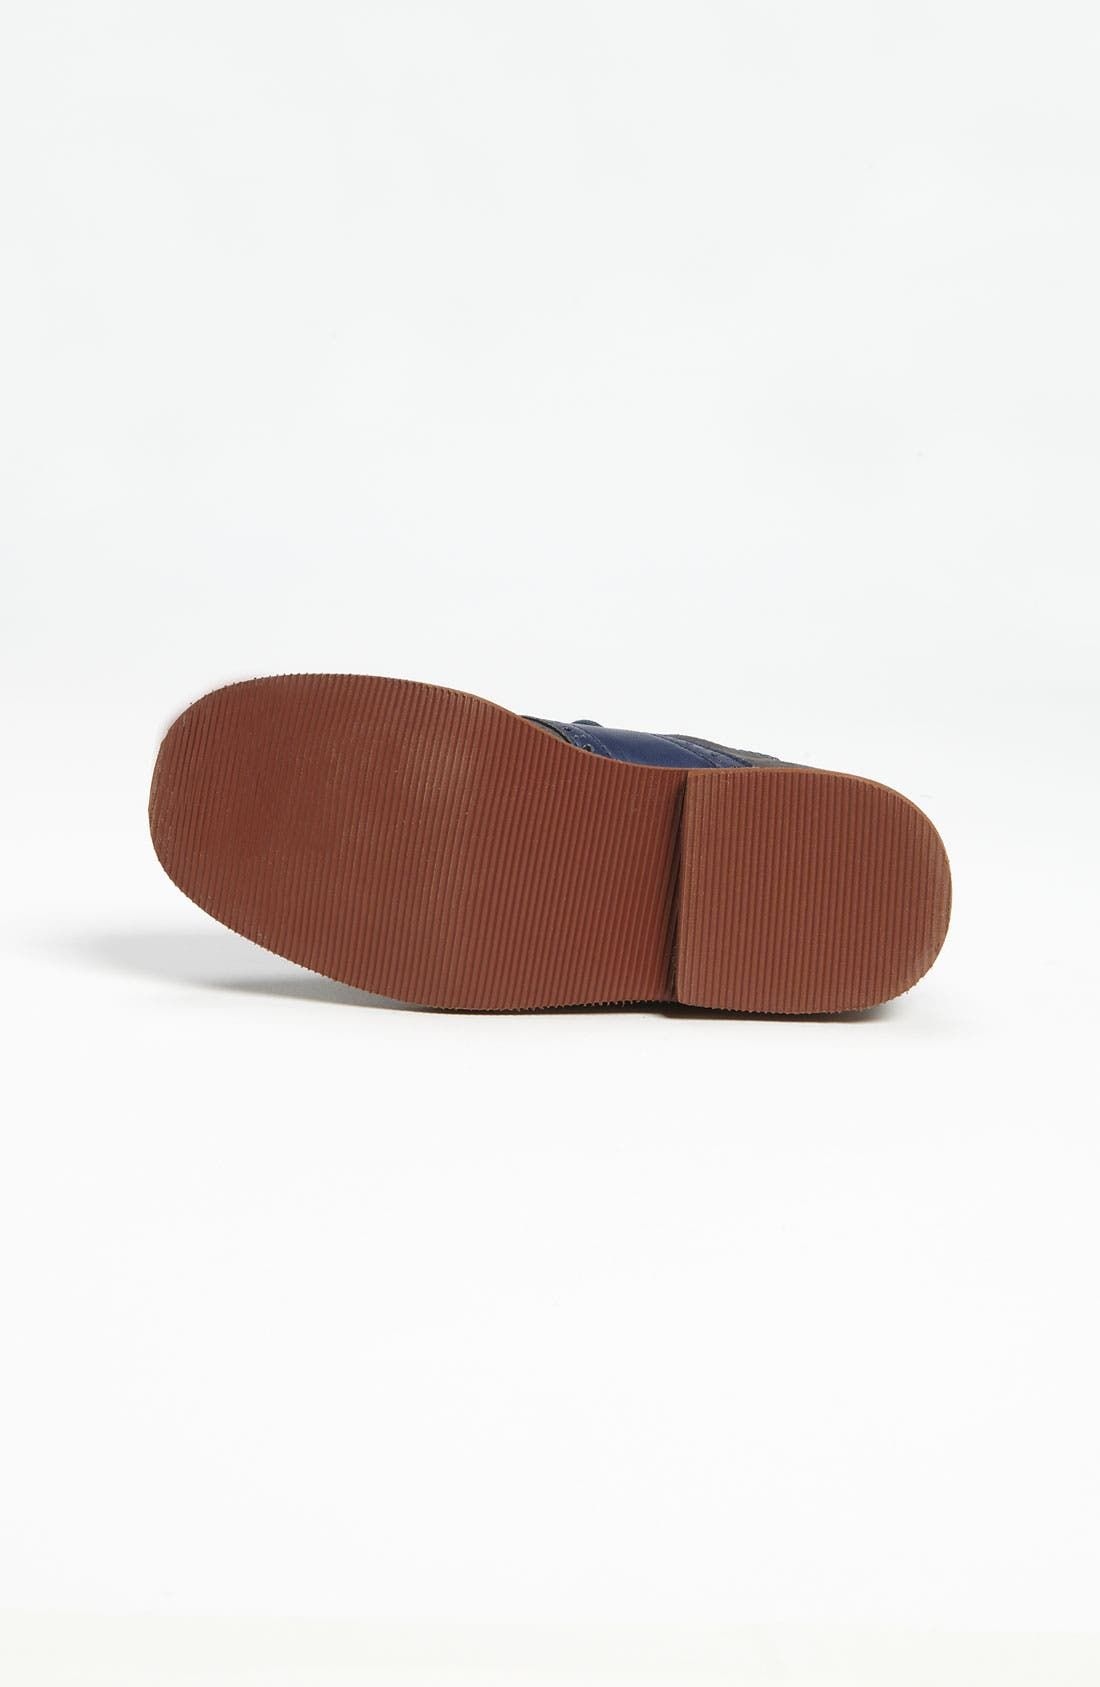 'Kennett' Oxford,                             Alternate thumbnail 8, color,                             NAVY MULTI